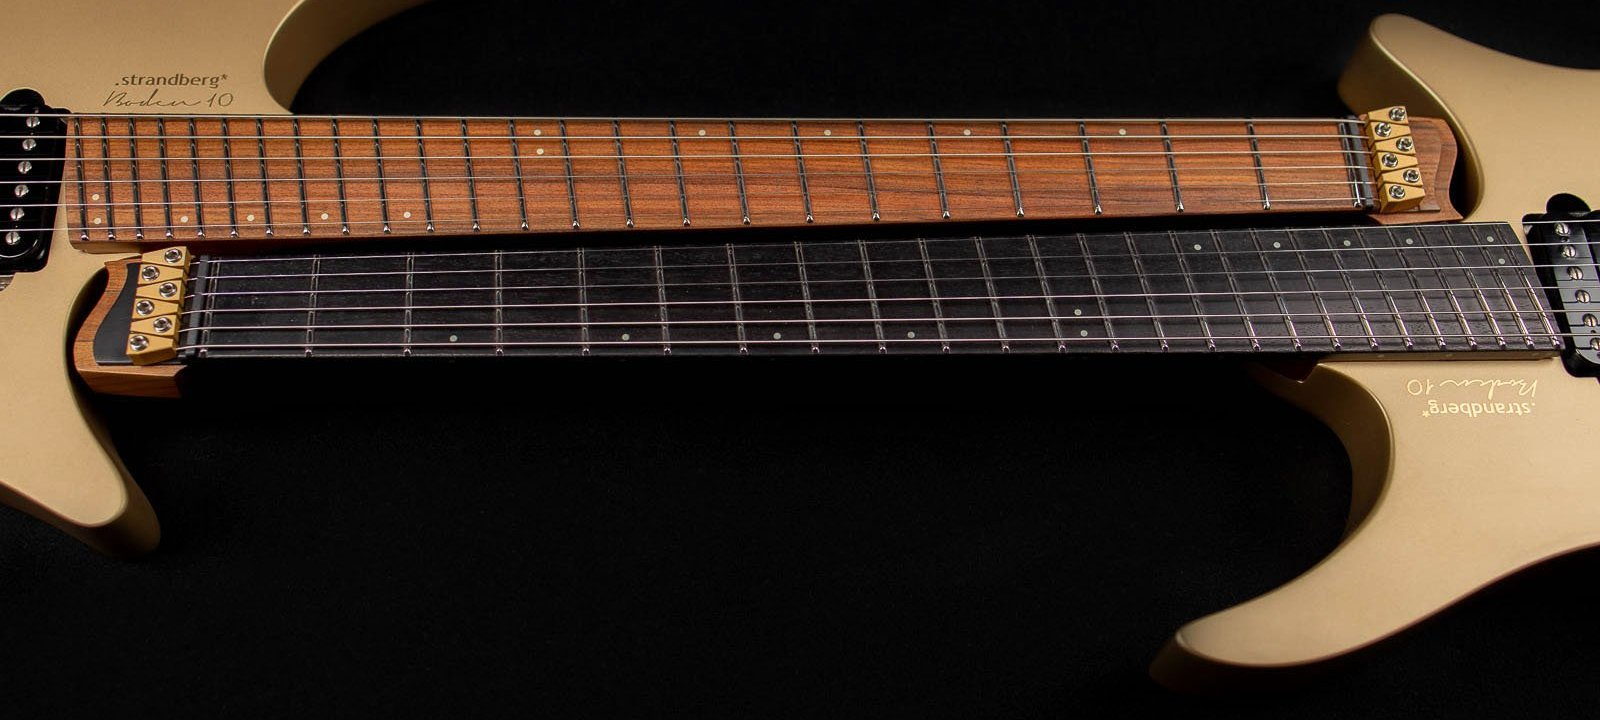 10 year anniversary 6 string gold headless guitar front view